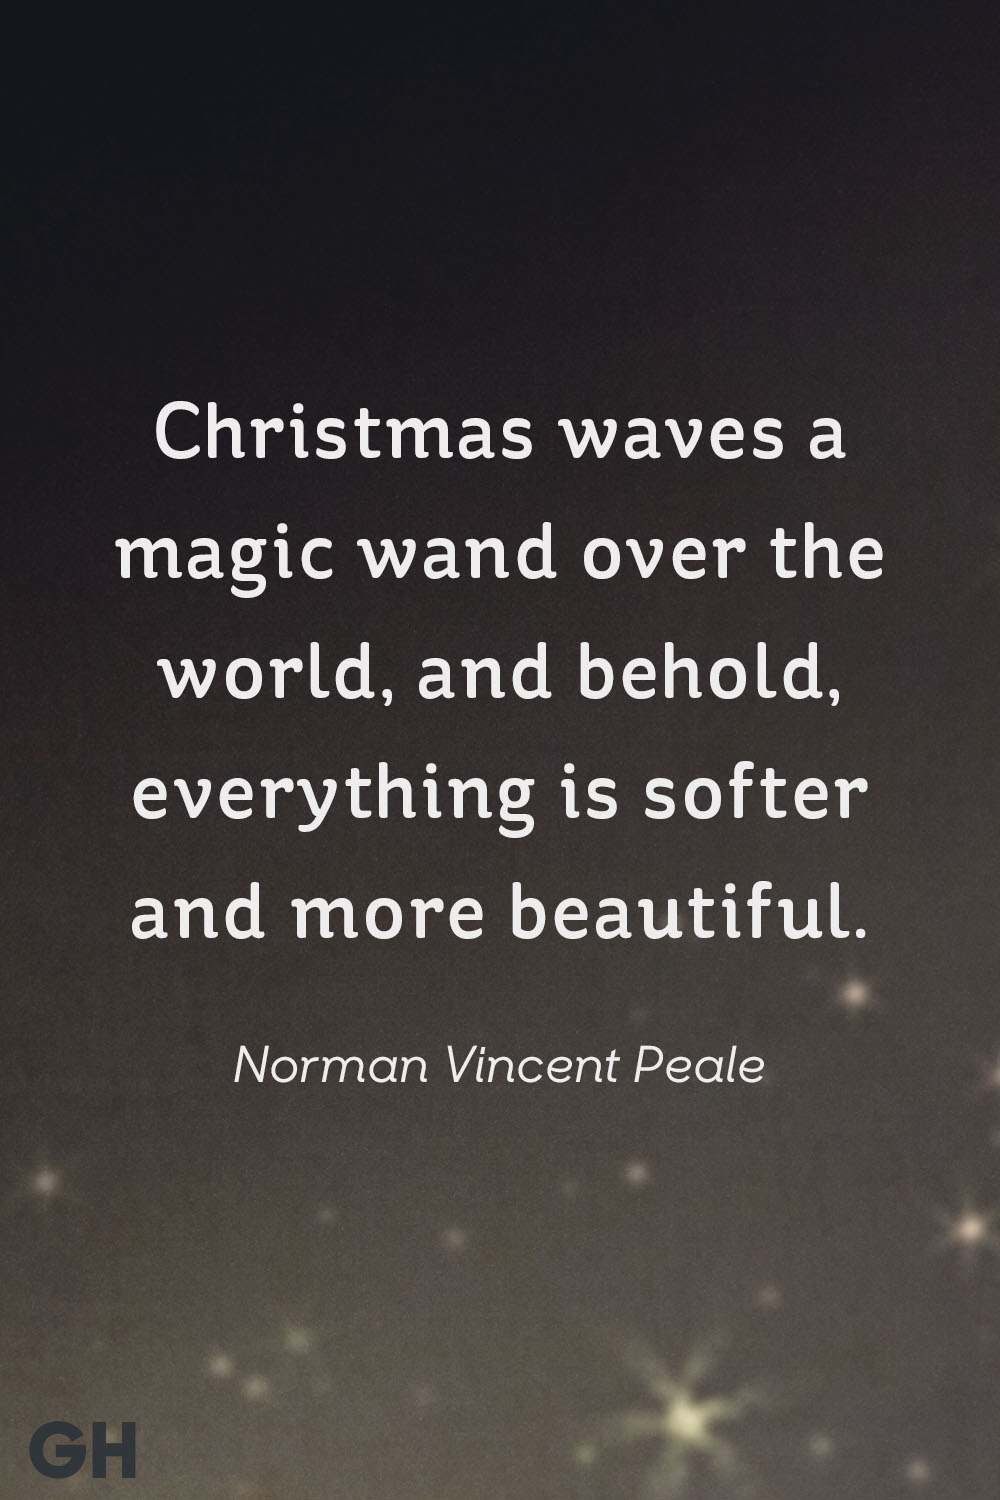 Quotes Christmas Classy 27 Best Christmas Quotes Of All Time  Festive Holiday Sayings